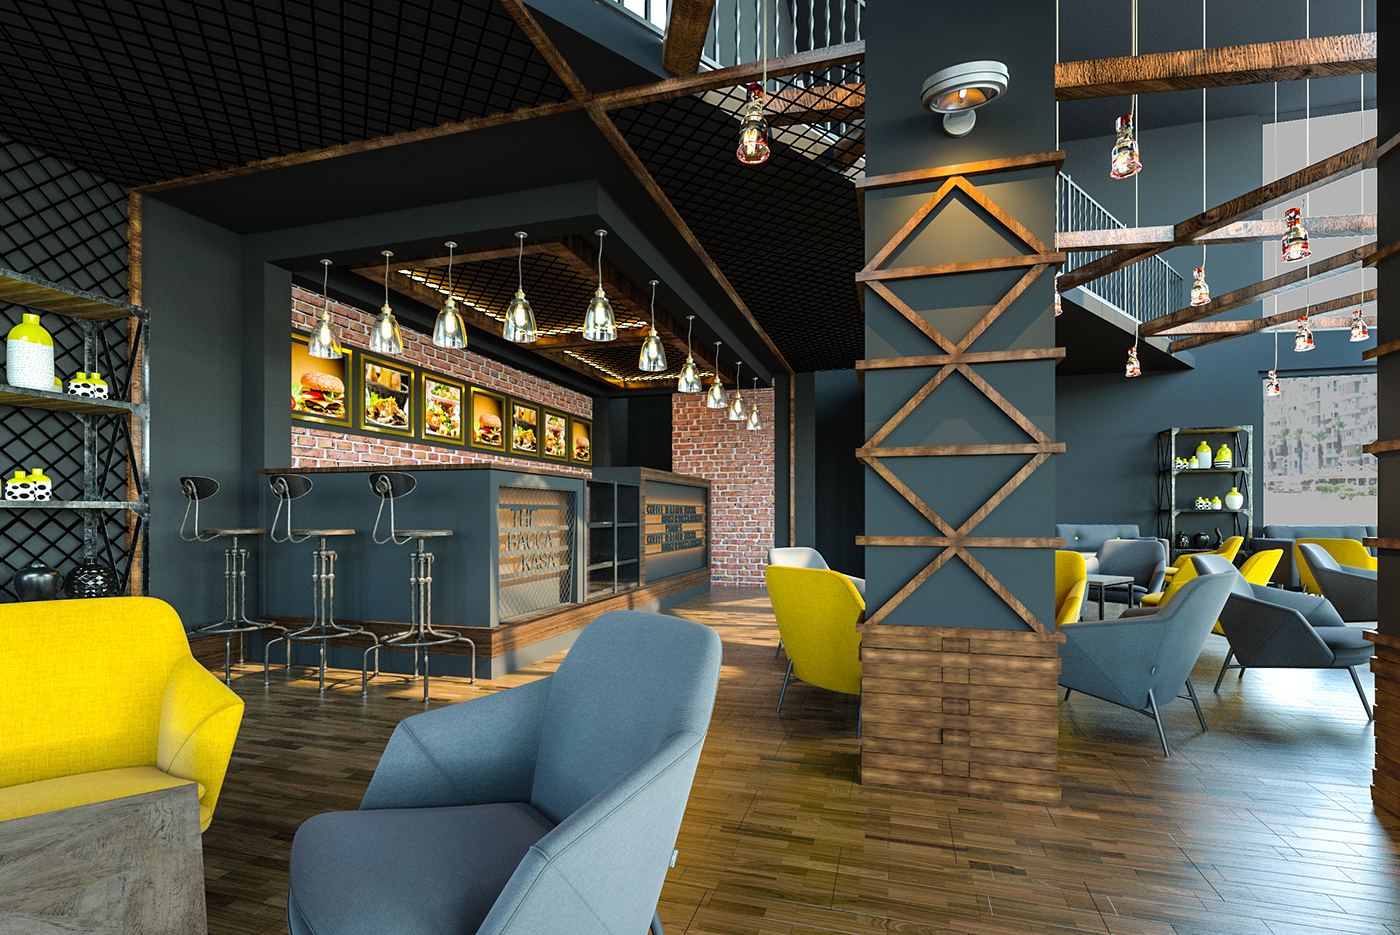 The BACCA CAFE nterior Design on Behance